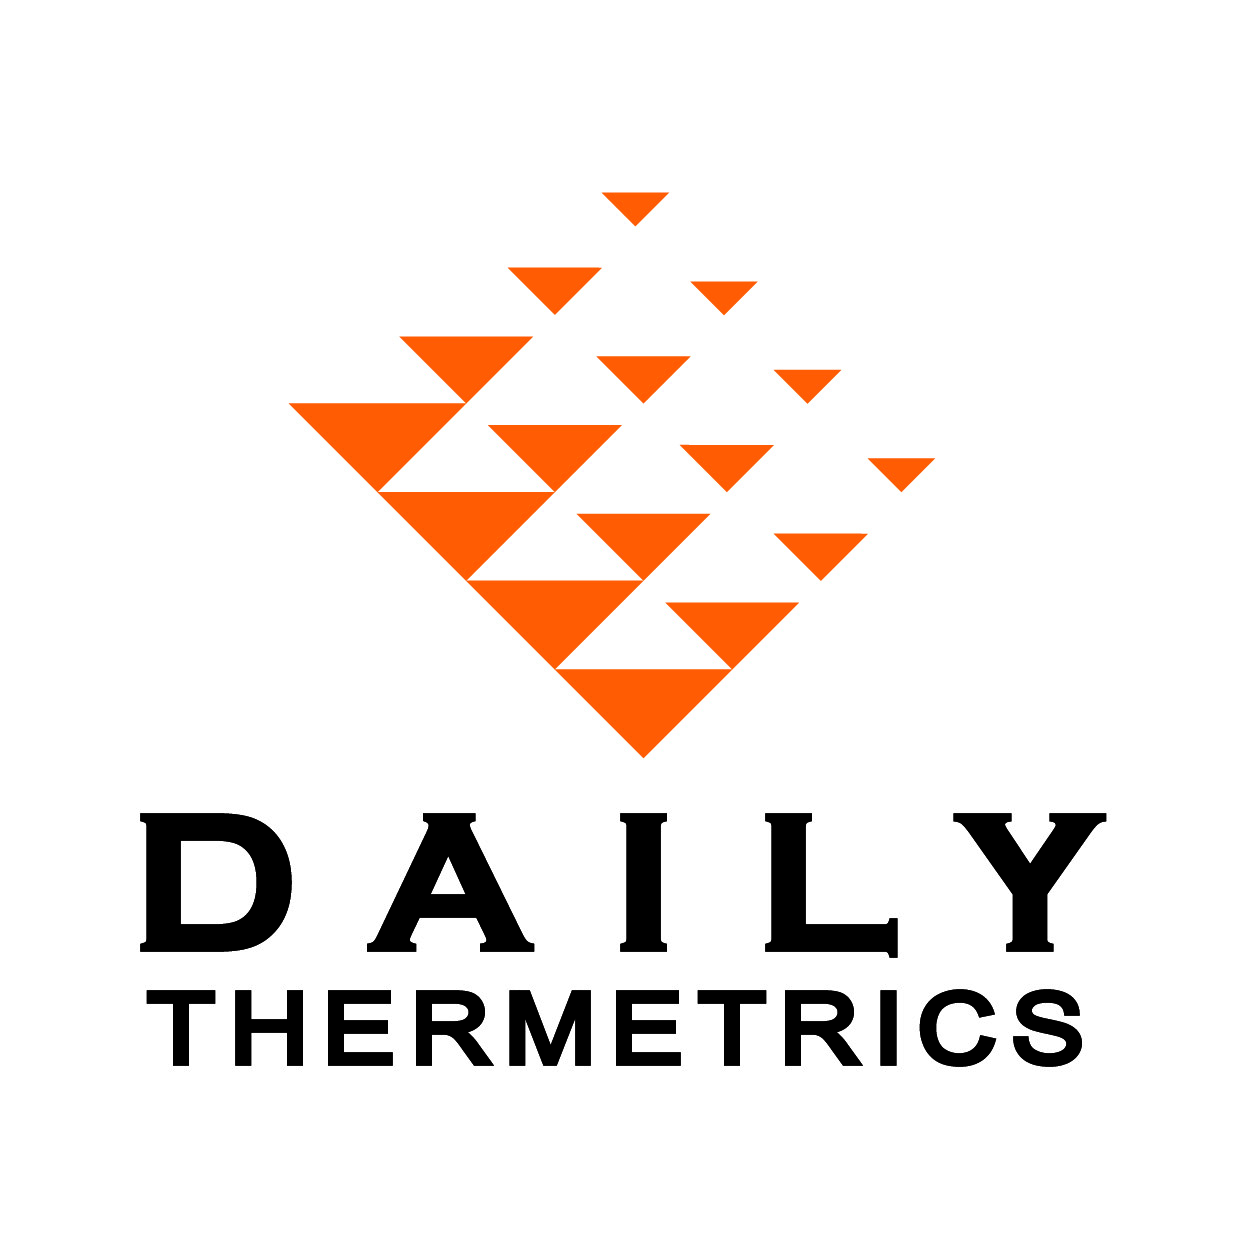 Daily Thermetrics Corporation